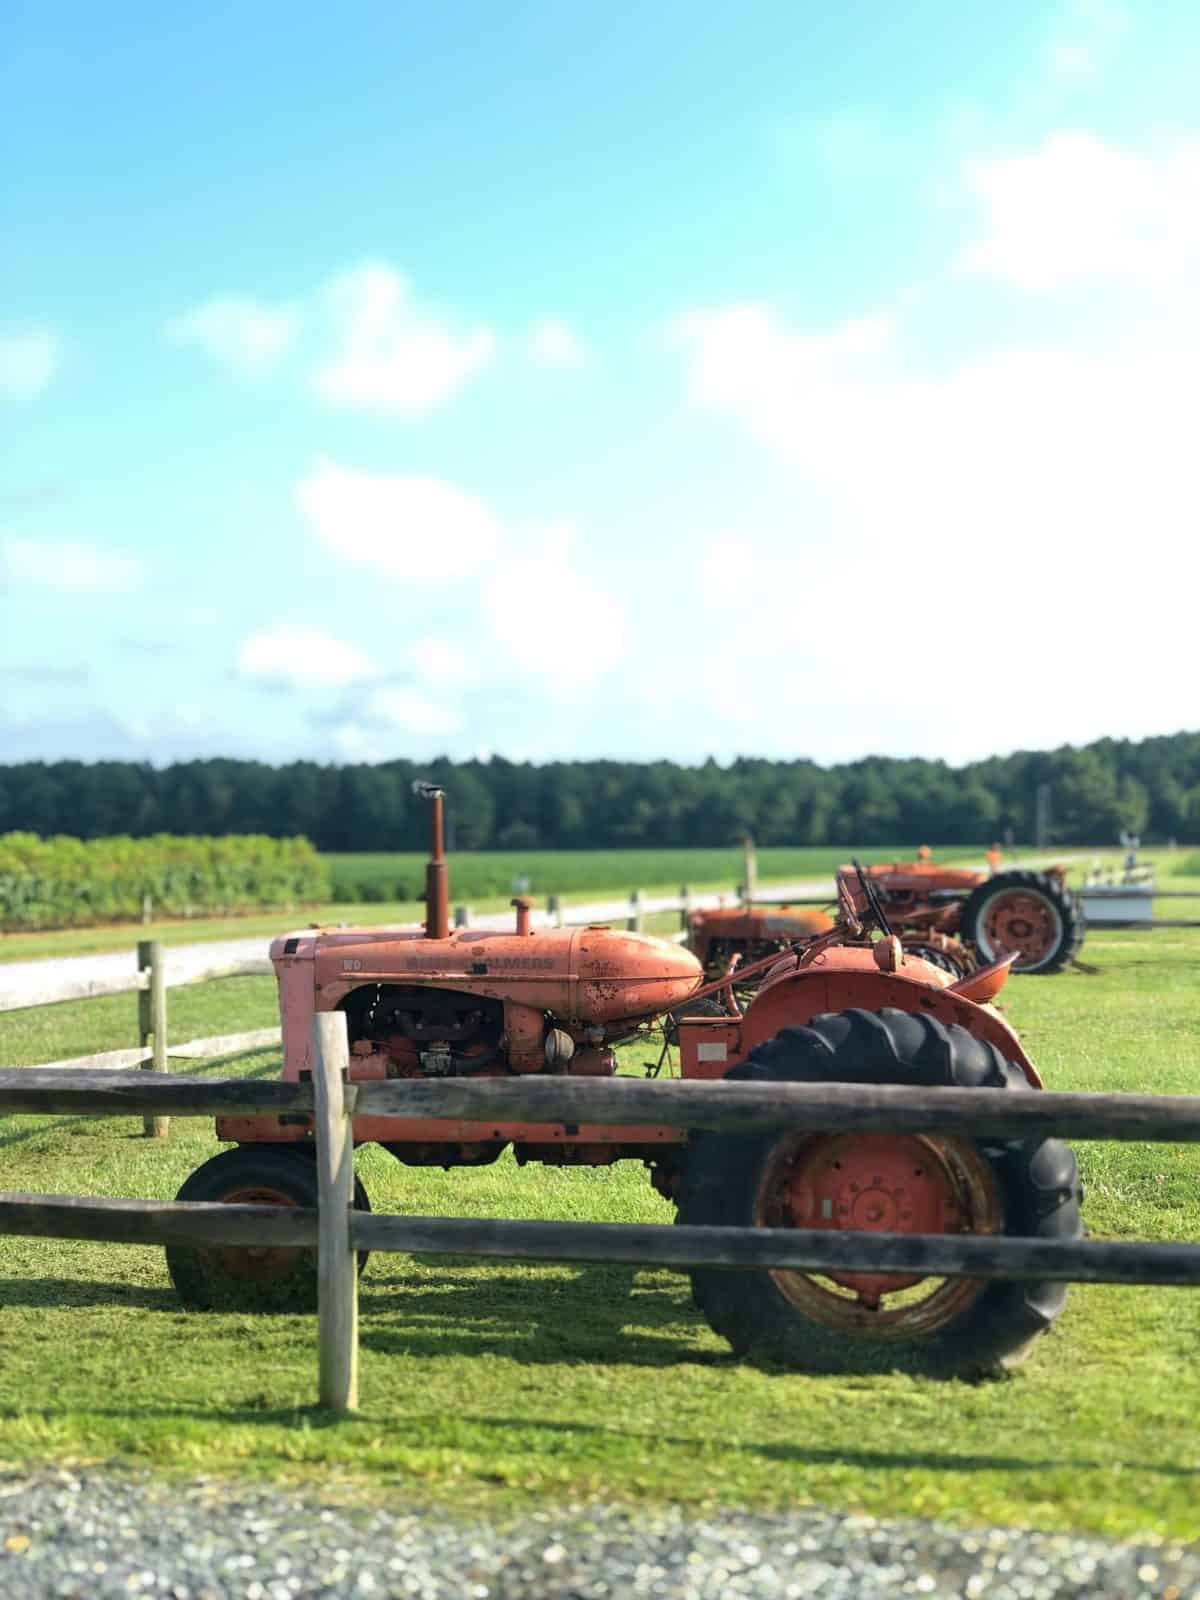 An old red tractor on a lawn with a wooden fence